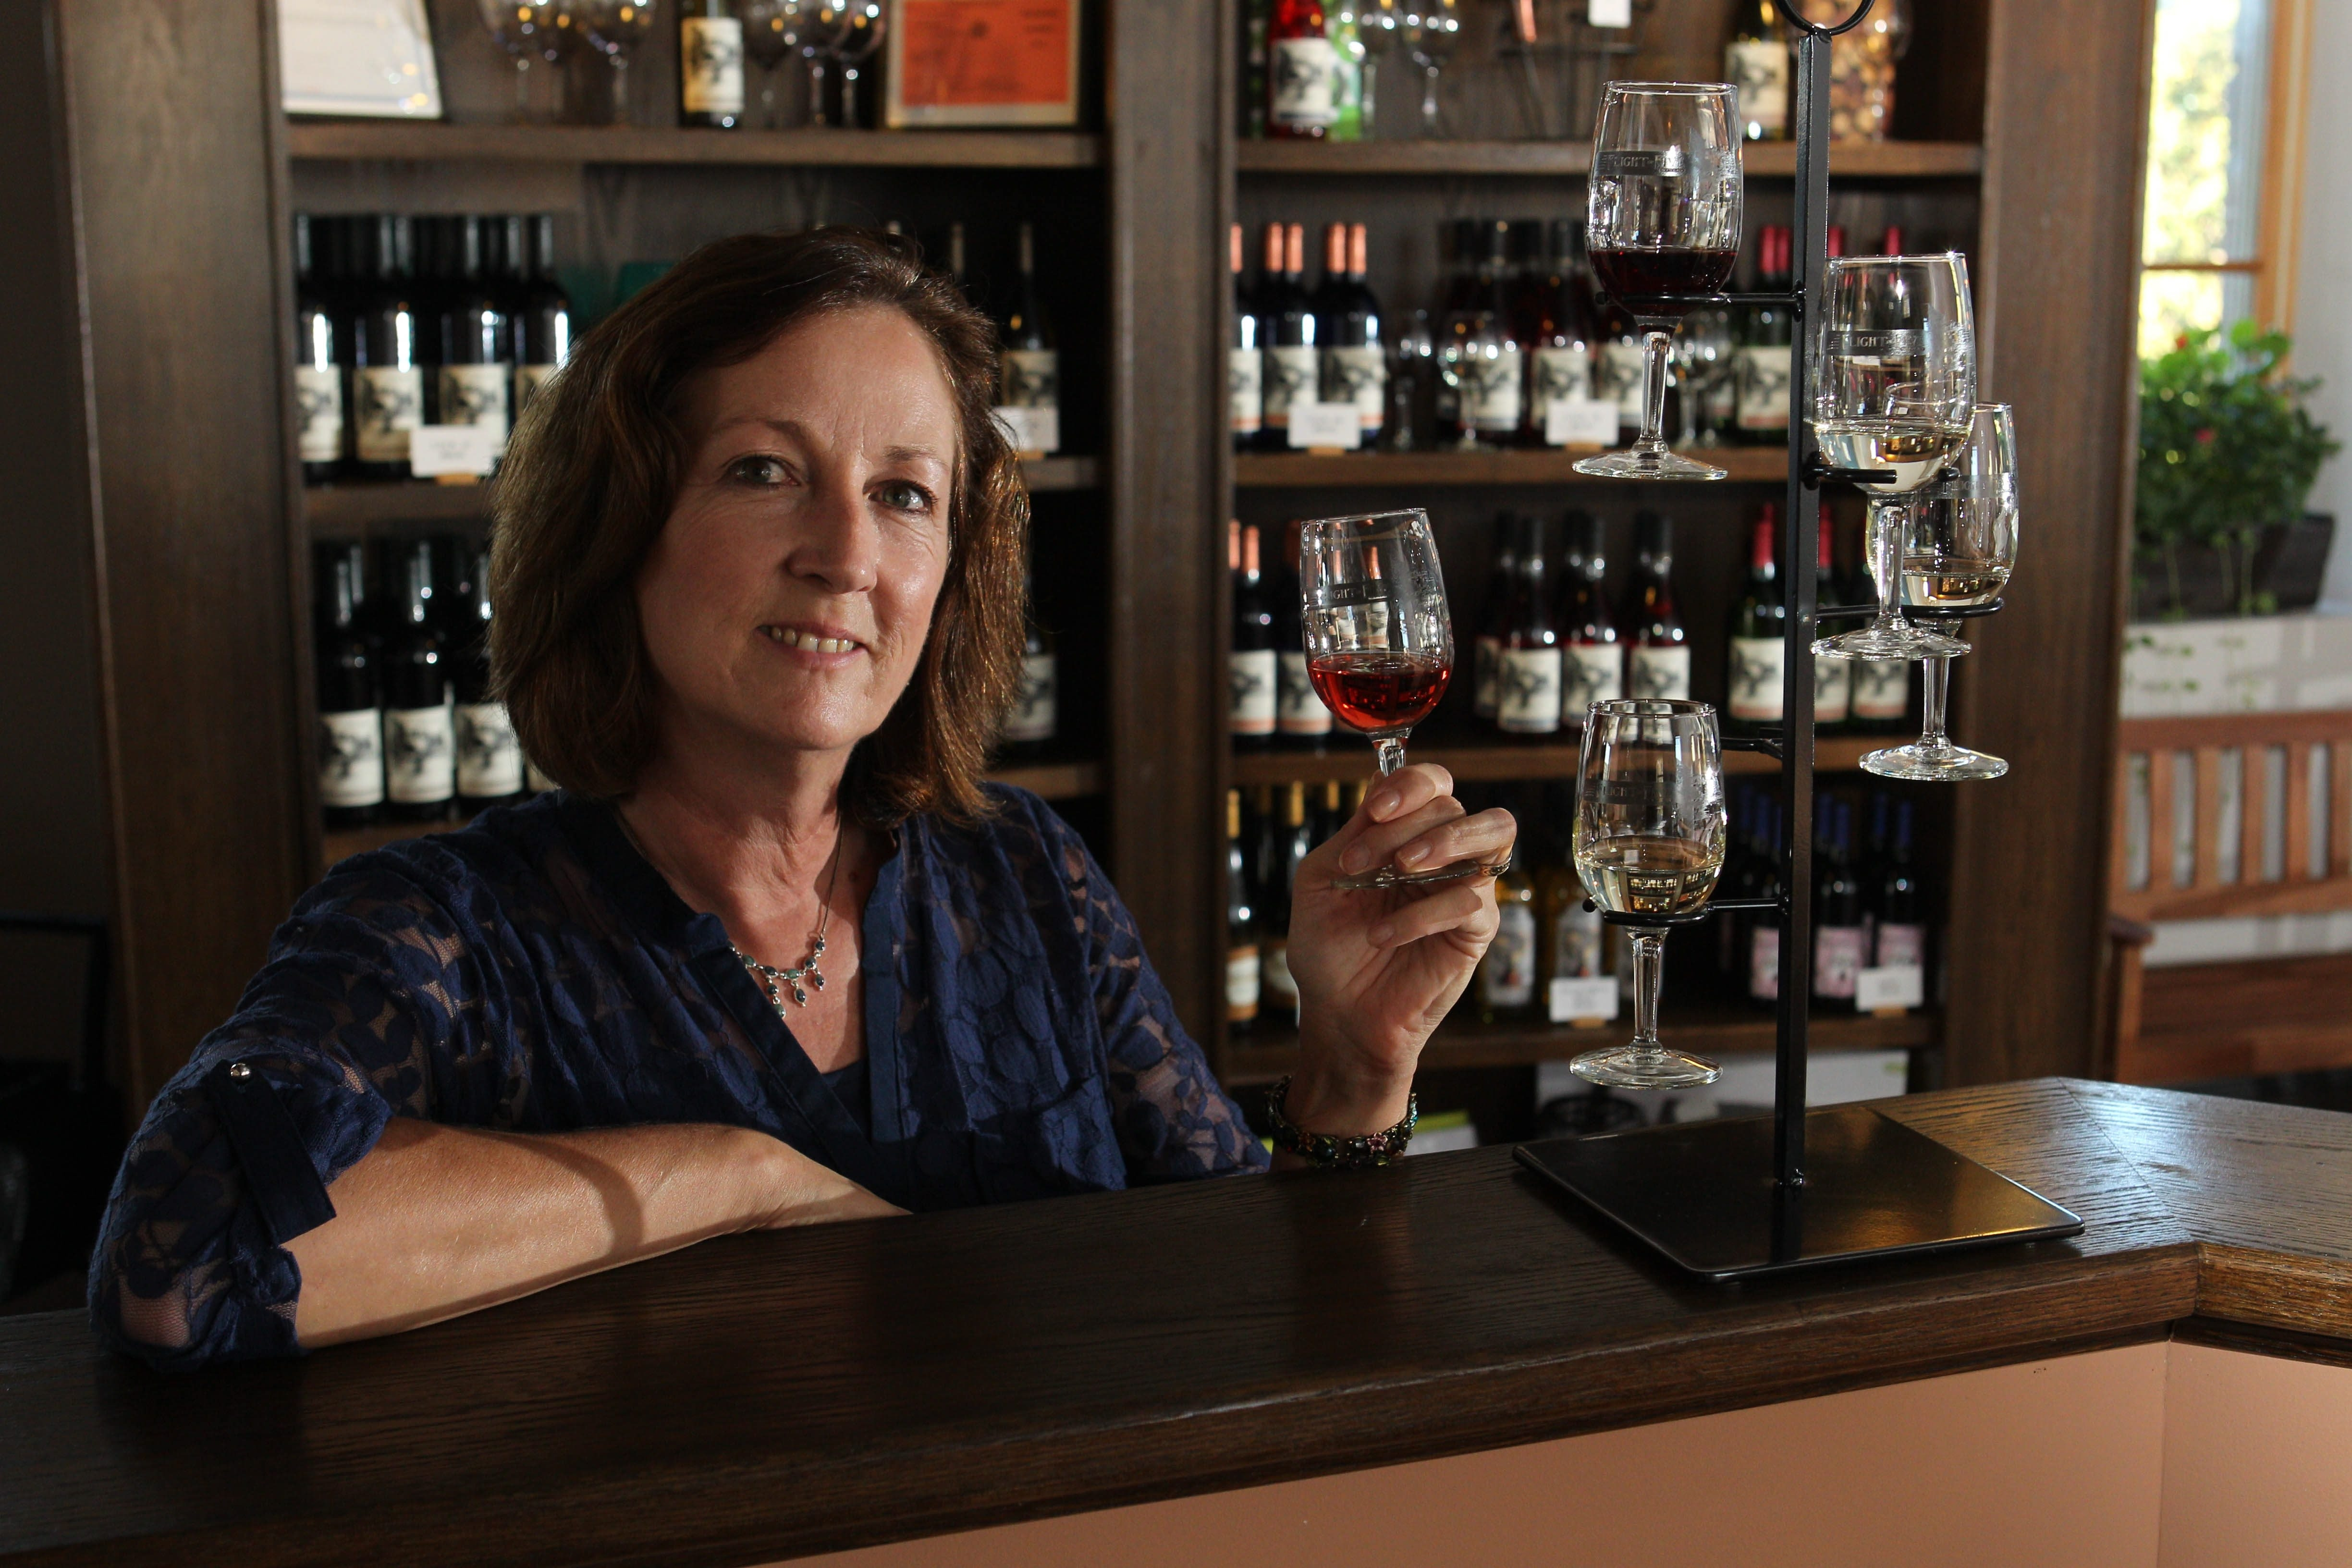 Jacqueline Connelly and her husband, Michael, own Flight of Five Winery in Lockport, an urban winery that combines their love of wine and the Erie Canal.